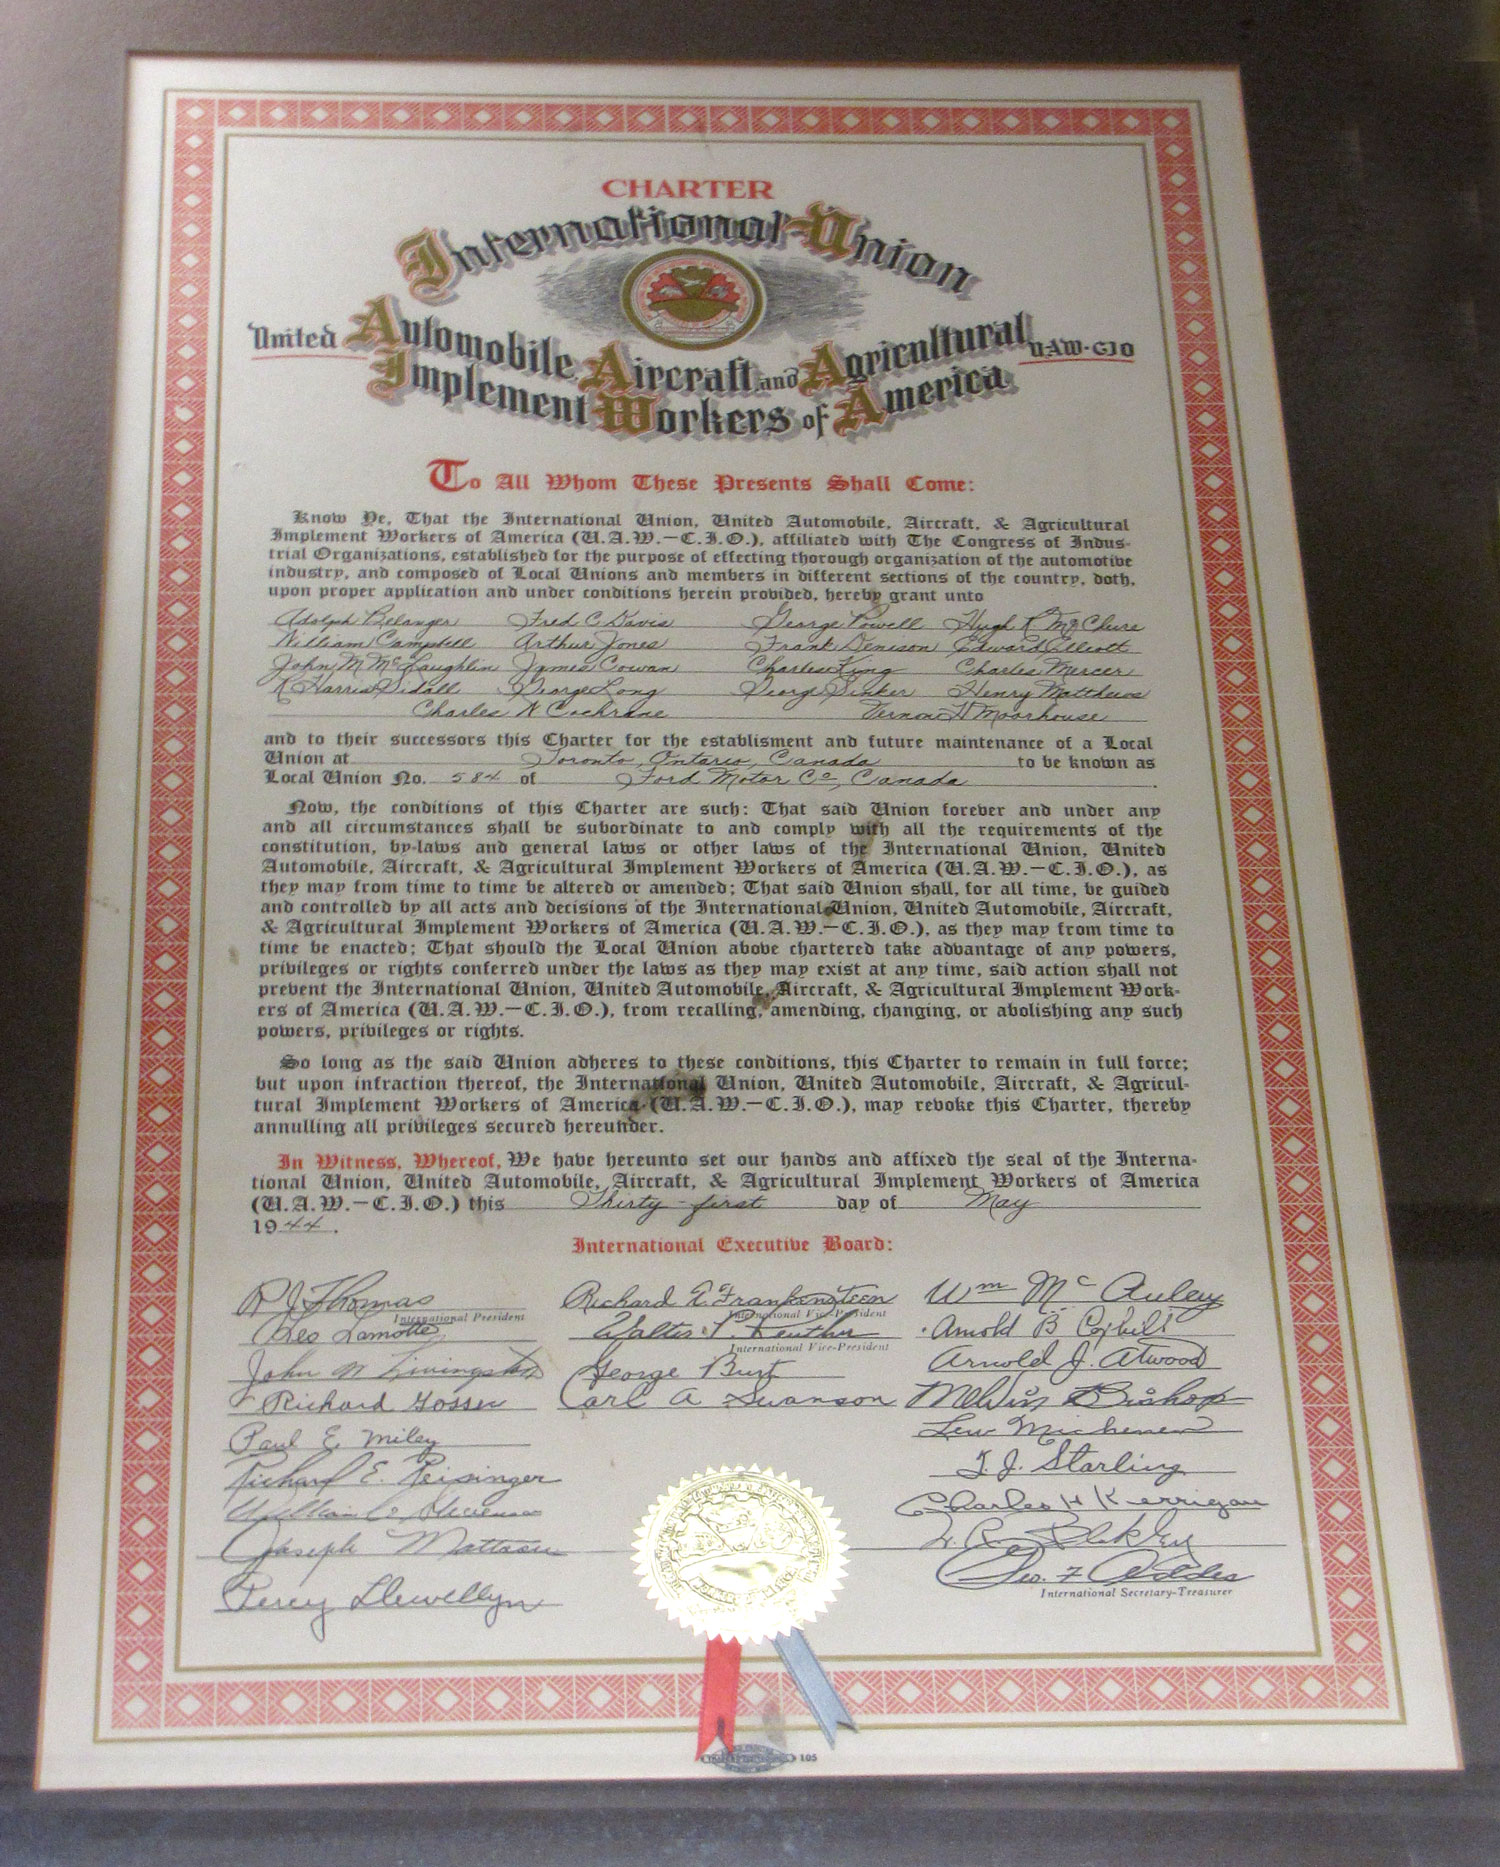 Uaw local 584 charter 1944